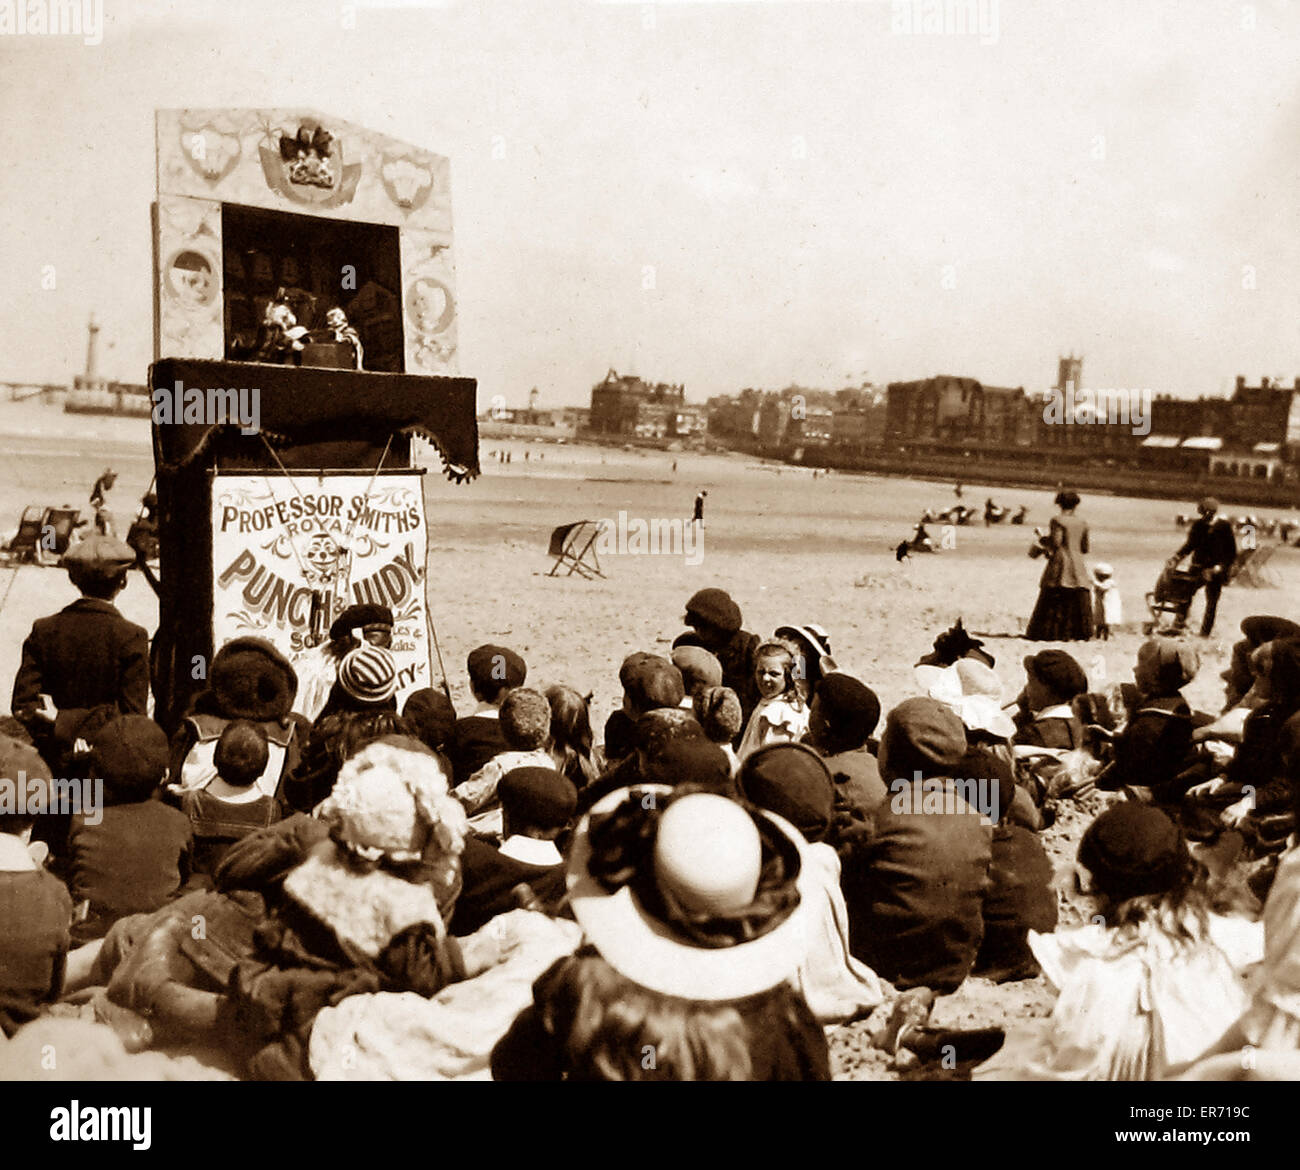 Professor Smith's Royal Punch and Judy show Victorian period - Stock Image